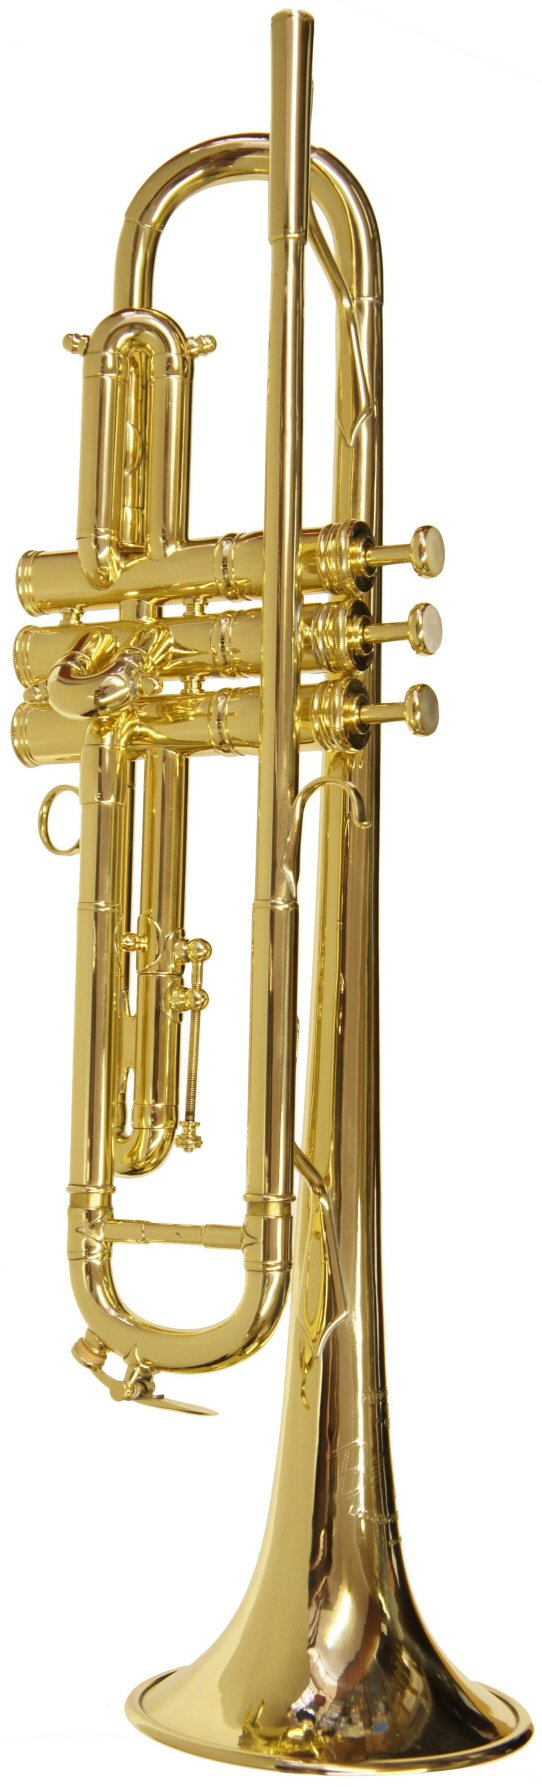 French Besson Brevette Trumpet